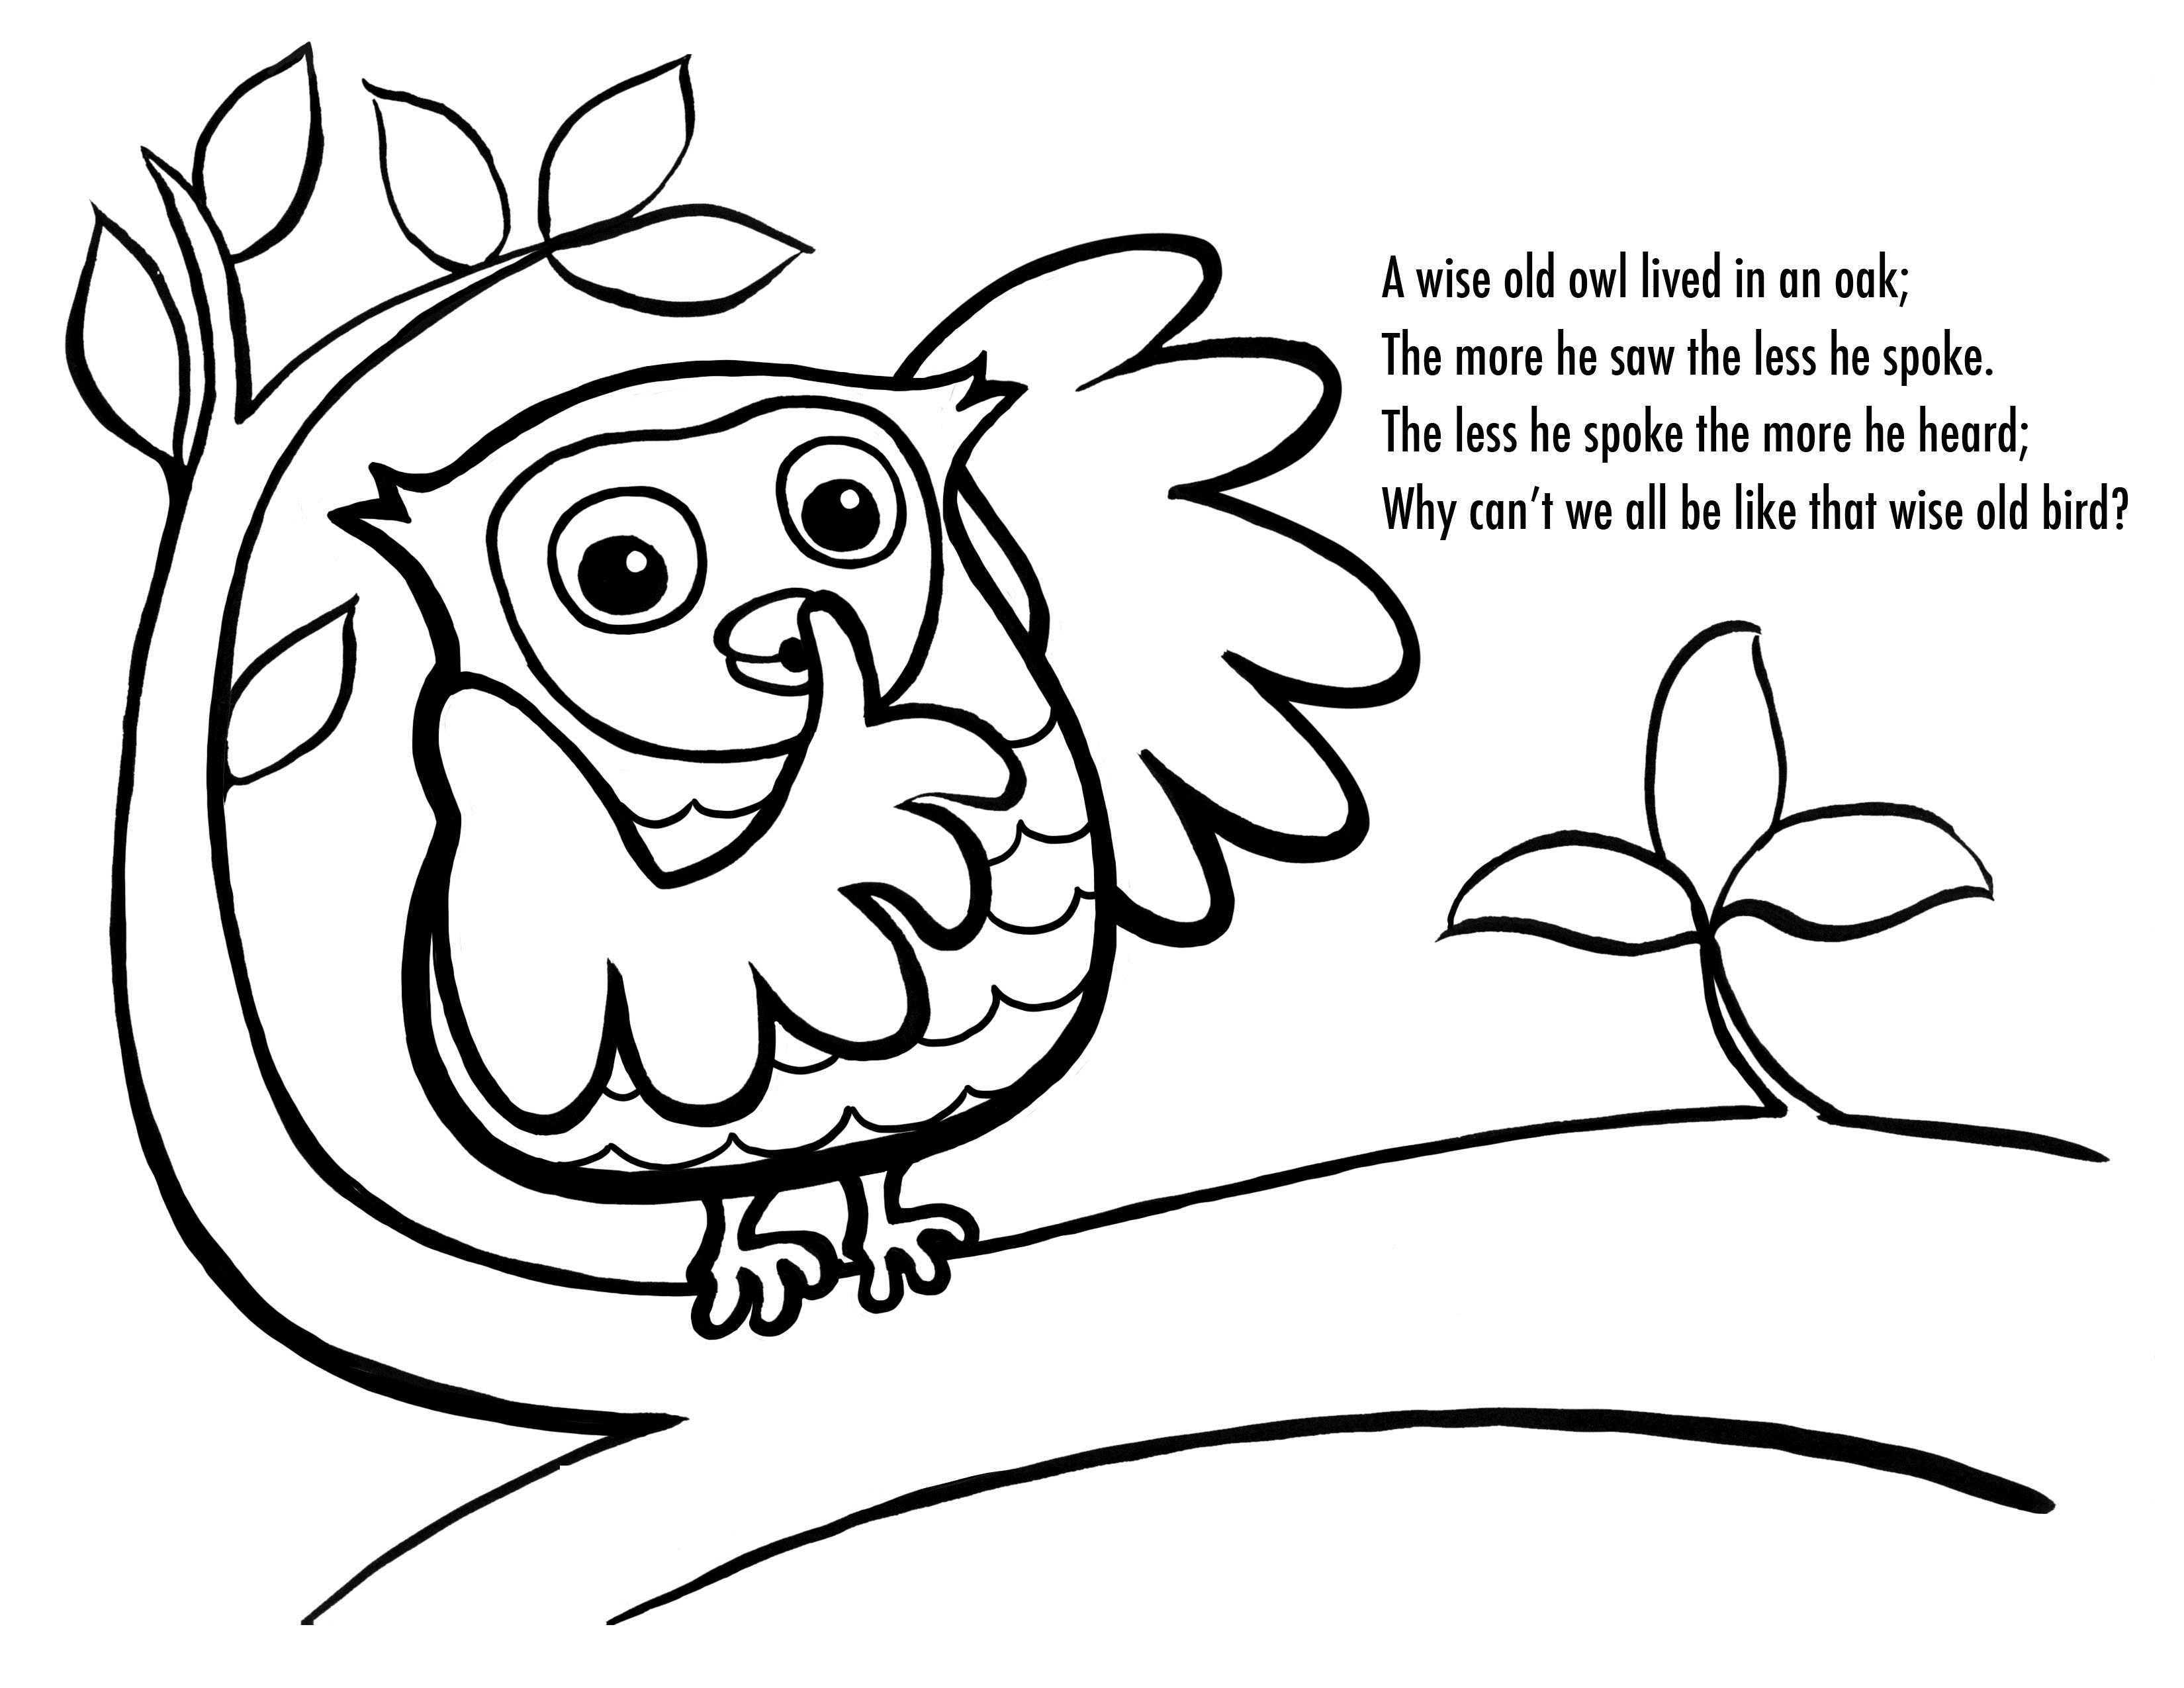 Free Cartoon Owl Coloring Pages, Download Free Clip Art, Free Clip - Free Printable Owl Coloring Sheets